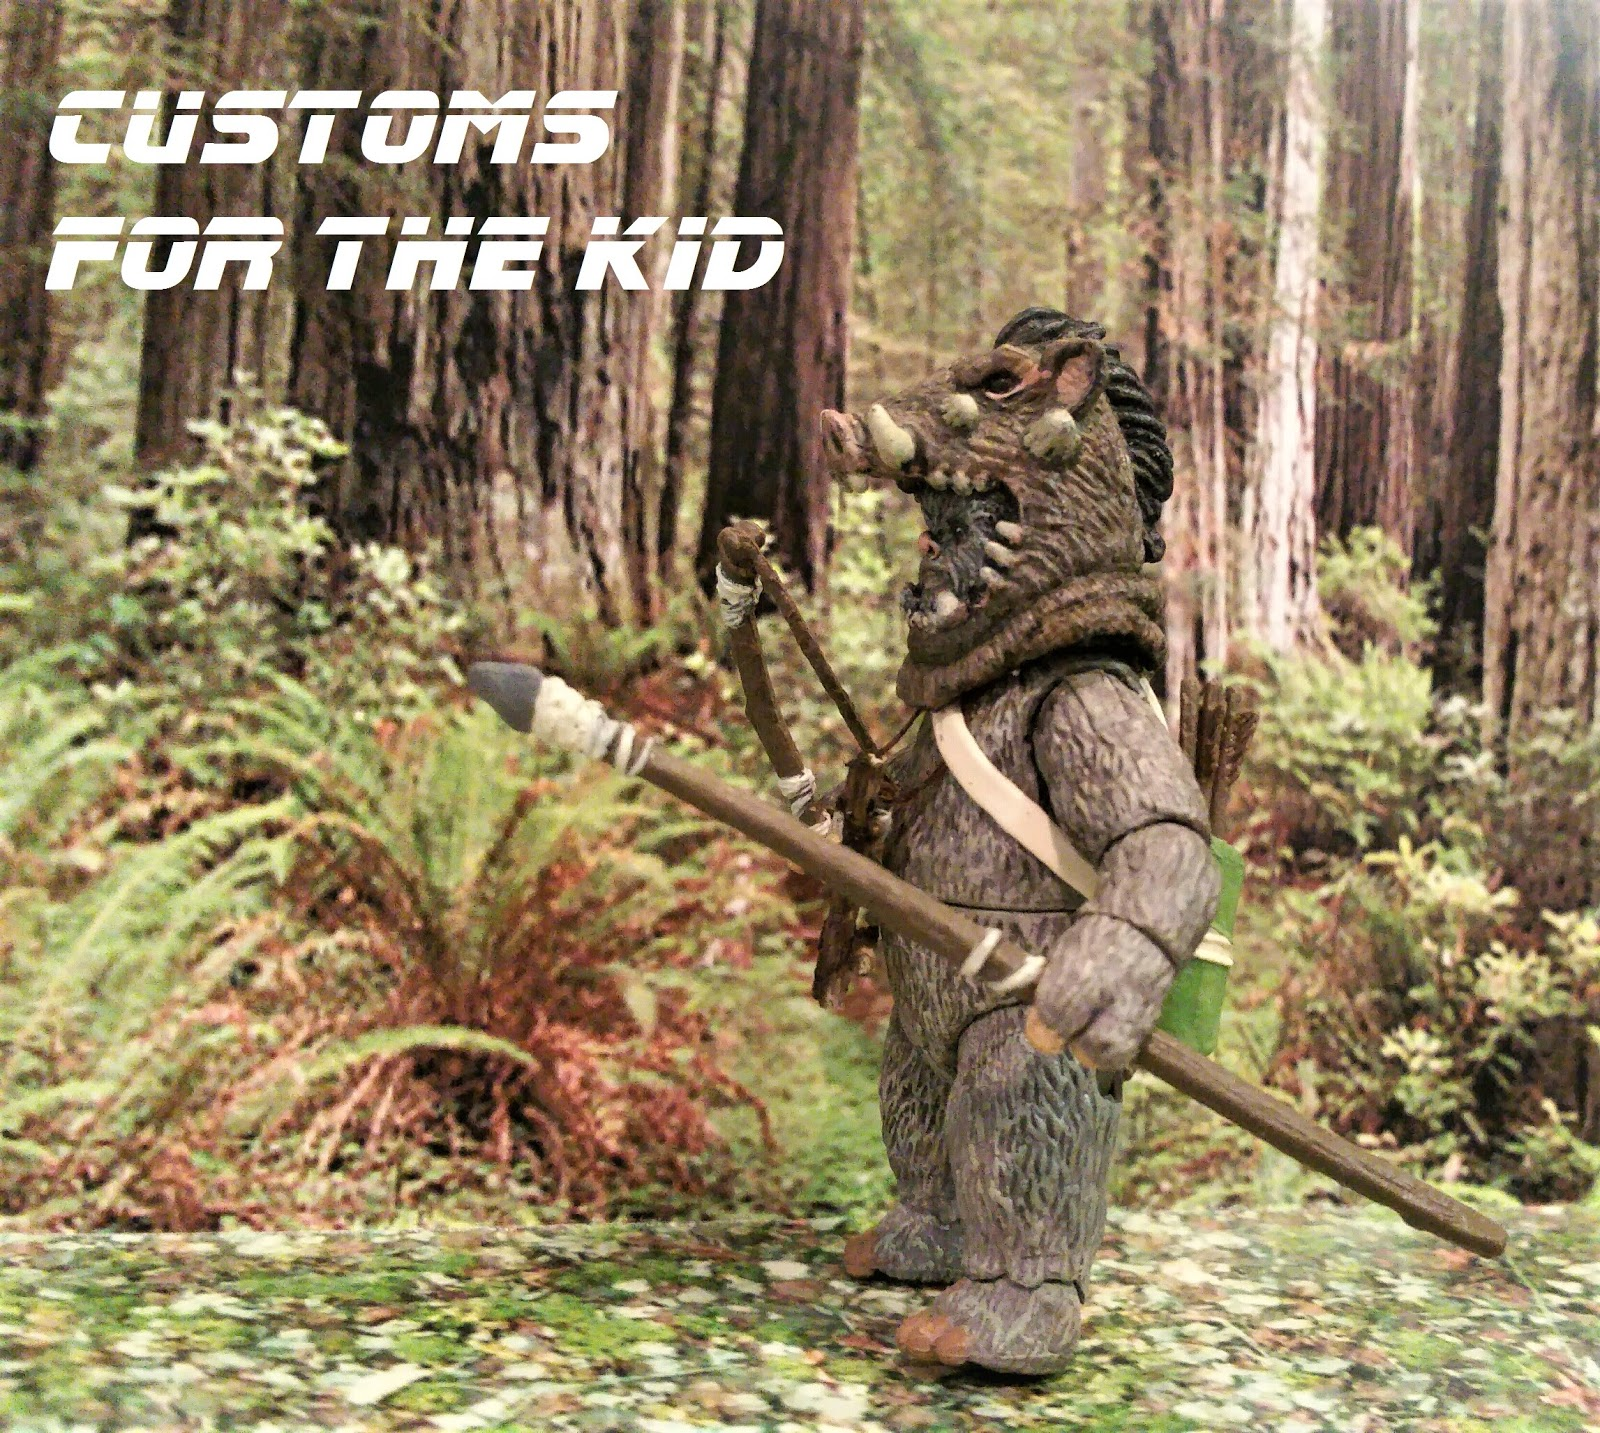 Star wars customs for the kid rotj ewok created by - Ewok wallpaper ...